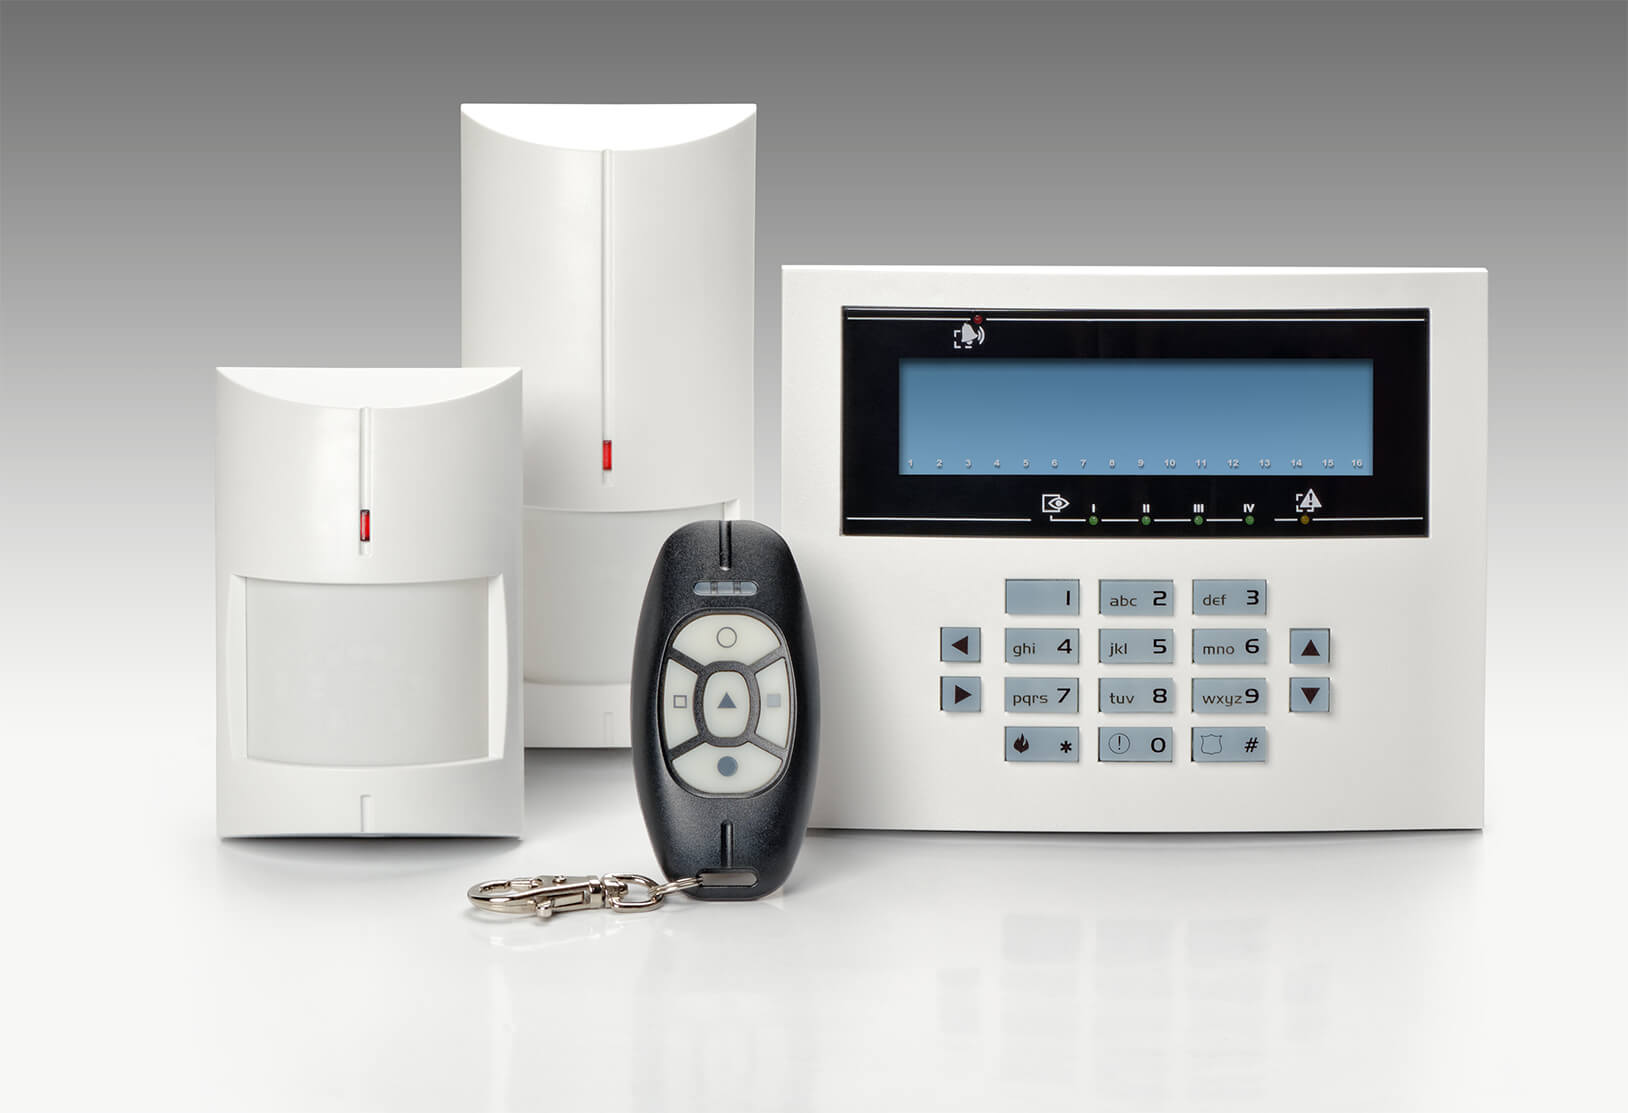 Burglar Alarms Repair in Fulham W14 - Local Fulham W14 alarm engineers.Call 02078872244 - See cost/price for burglar alarm repair and book your alarm engineer. No Hidden charges,No Contracts, Book as you need.Engineers on demand.All alarm makes repaired.Same day service ability.